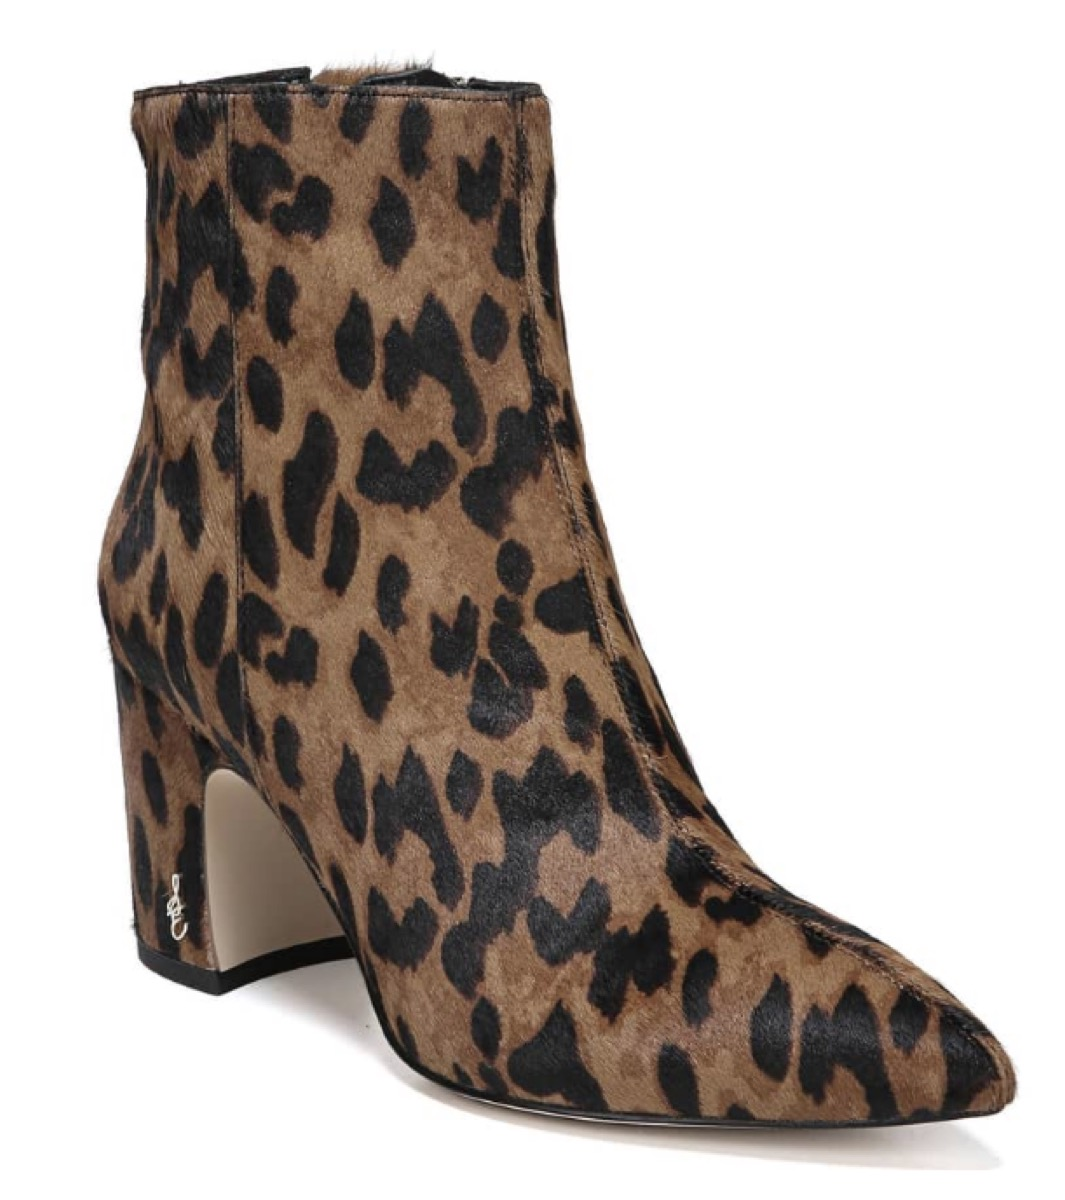 Sam Edelman Hilty Boot buy after holidays